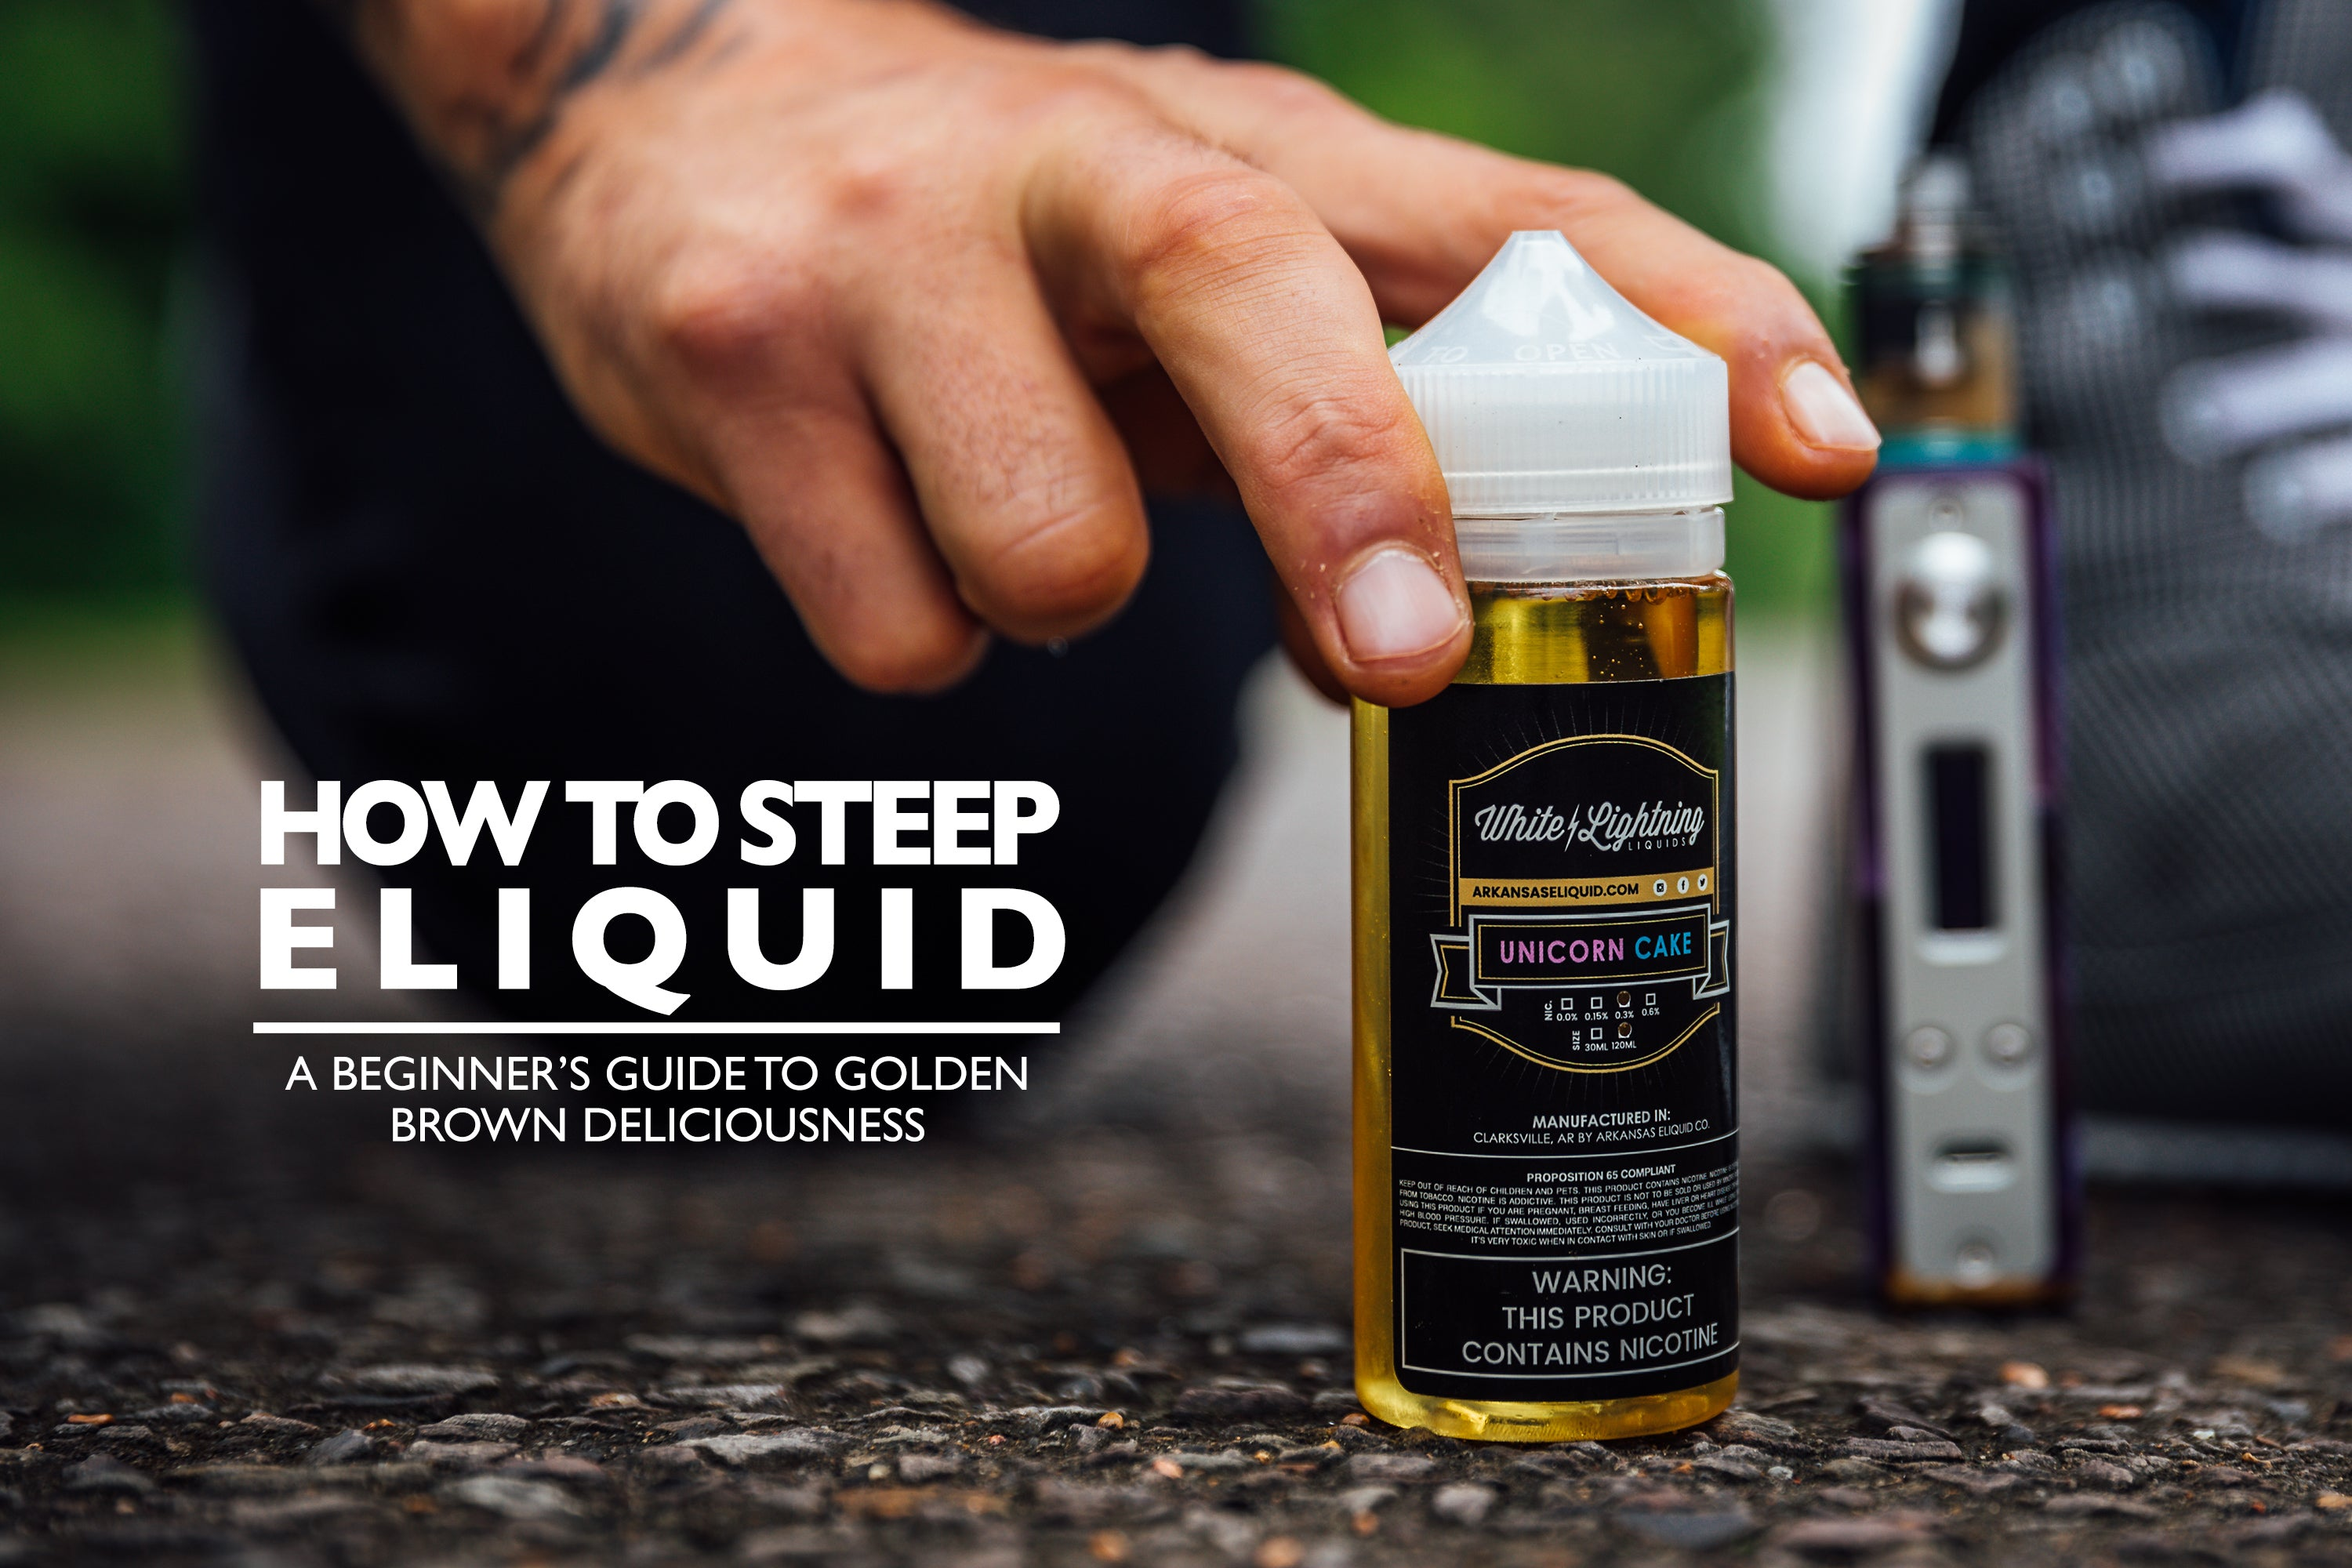 A Beginner's Guide To Steeping E-Liquids